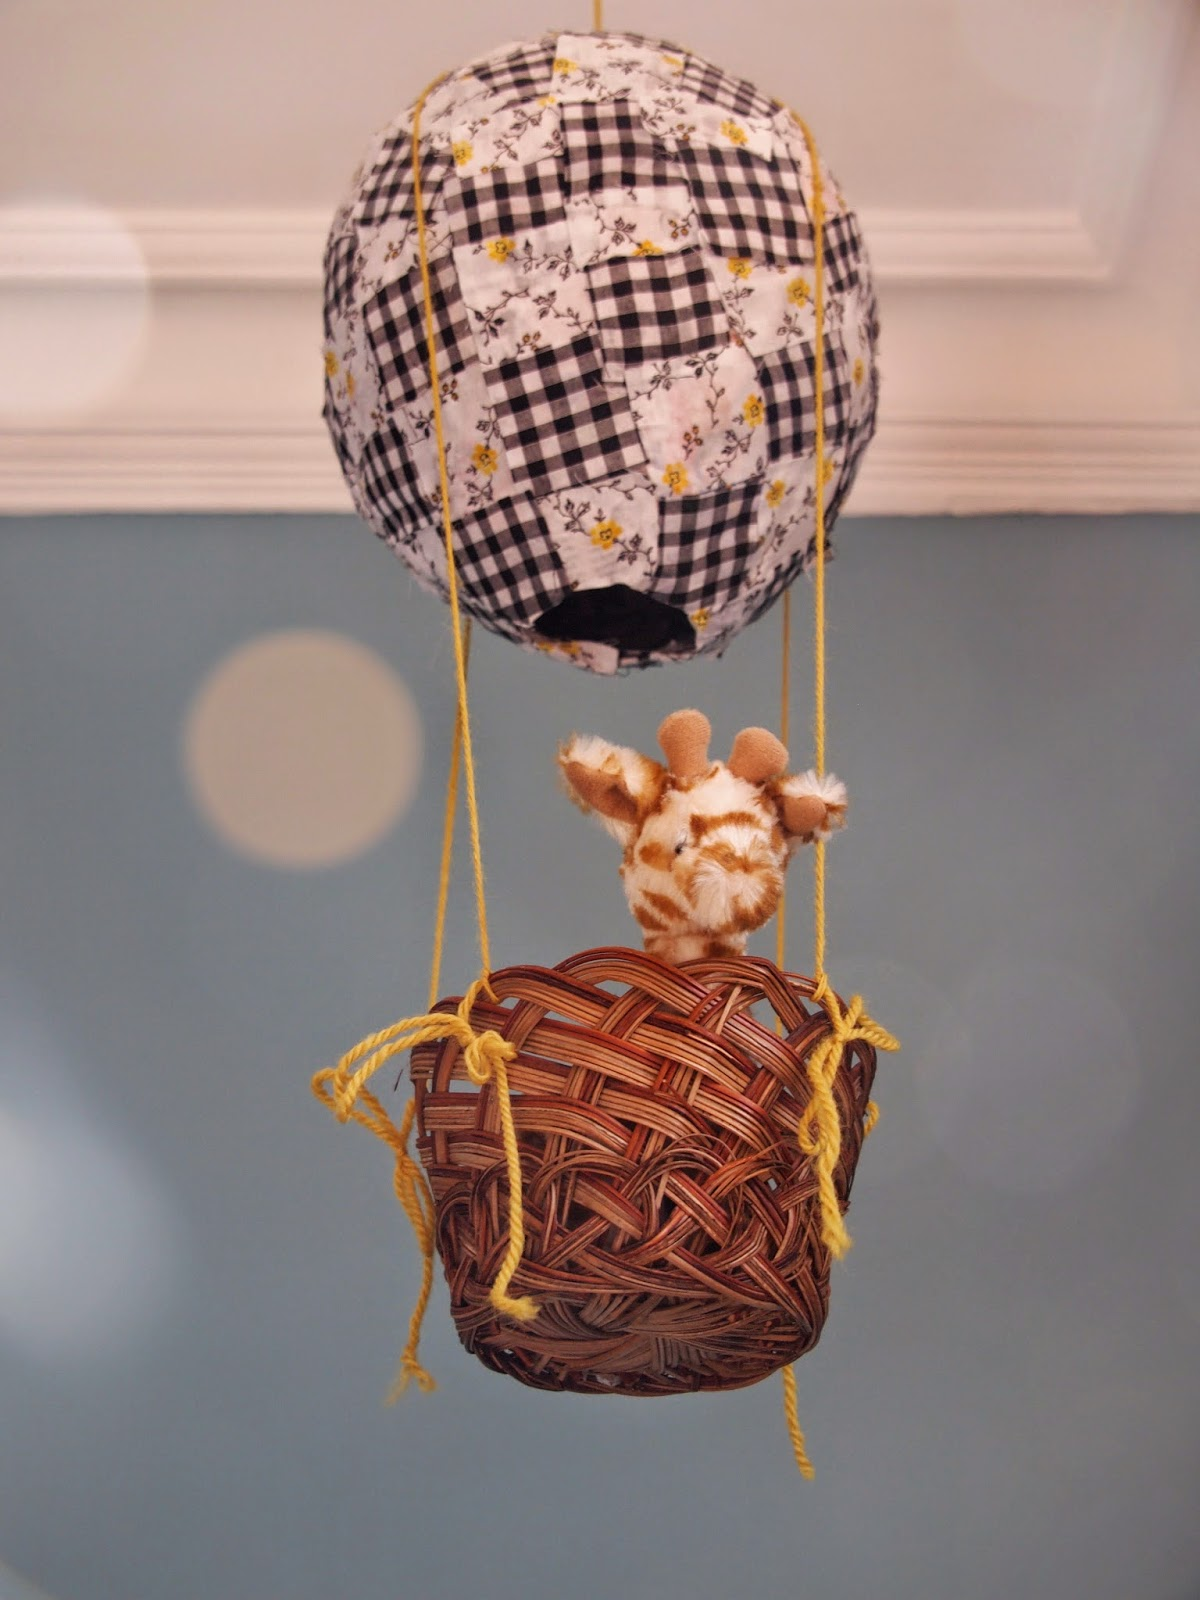 The thrifty challenge mini hot air balloon for How to make a small air balloon